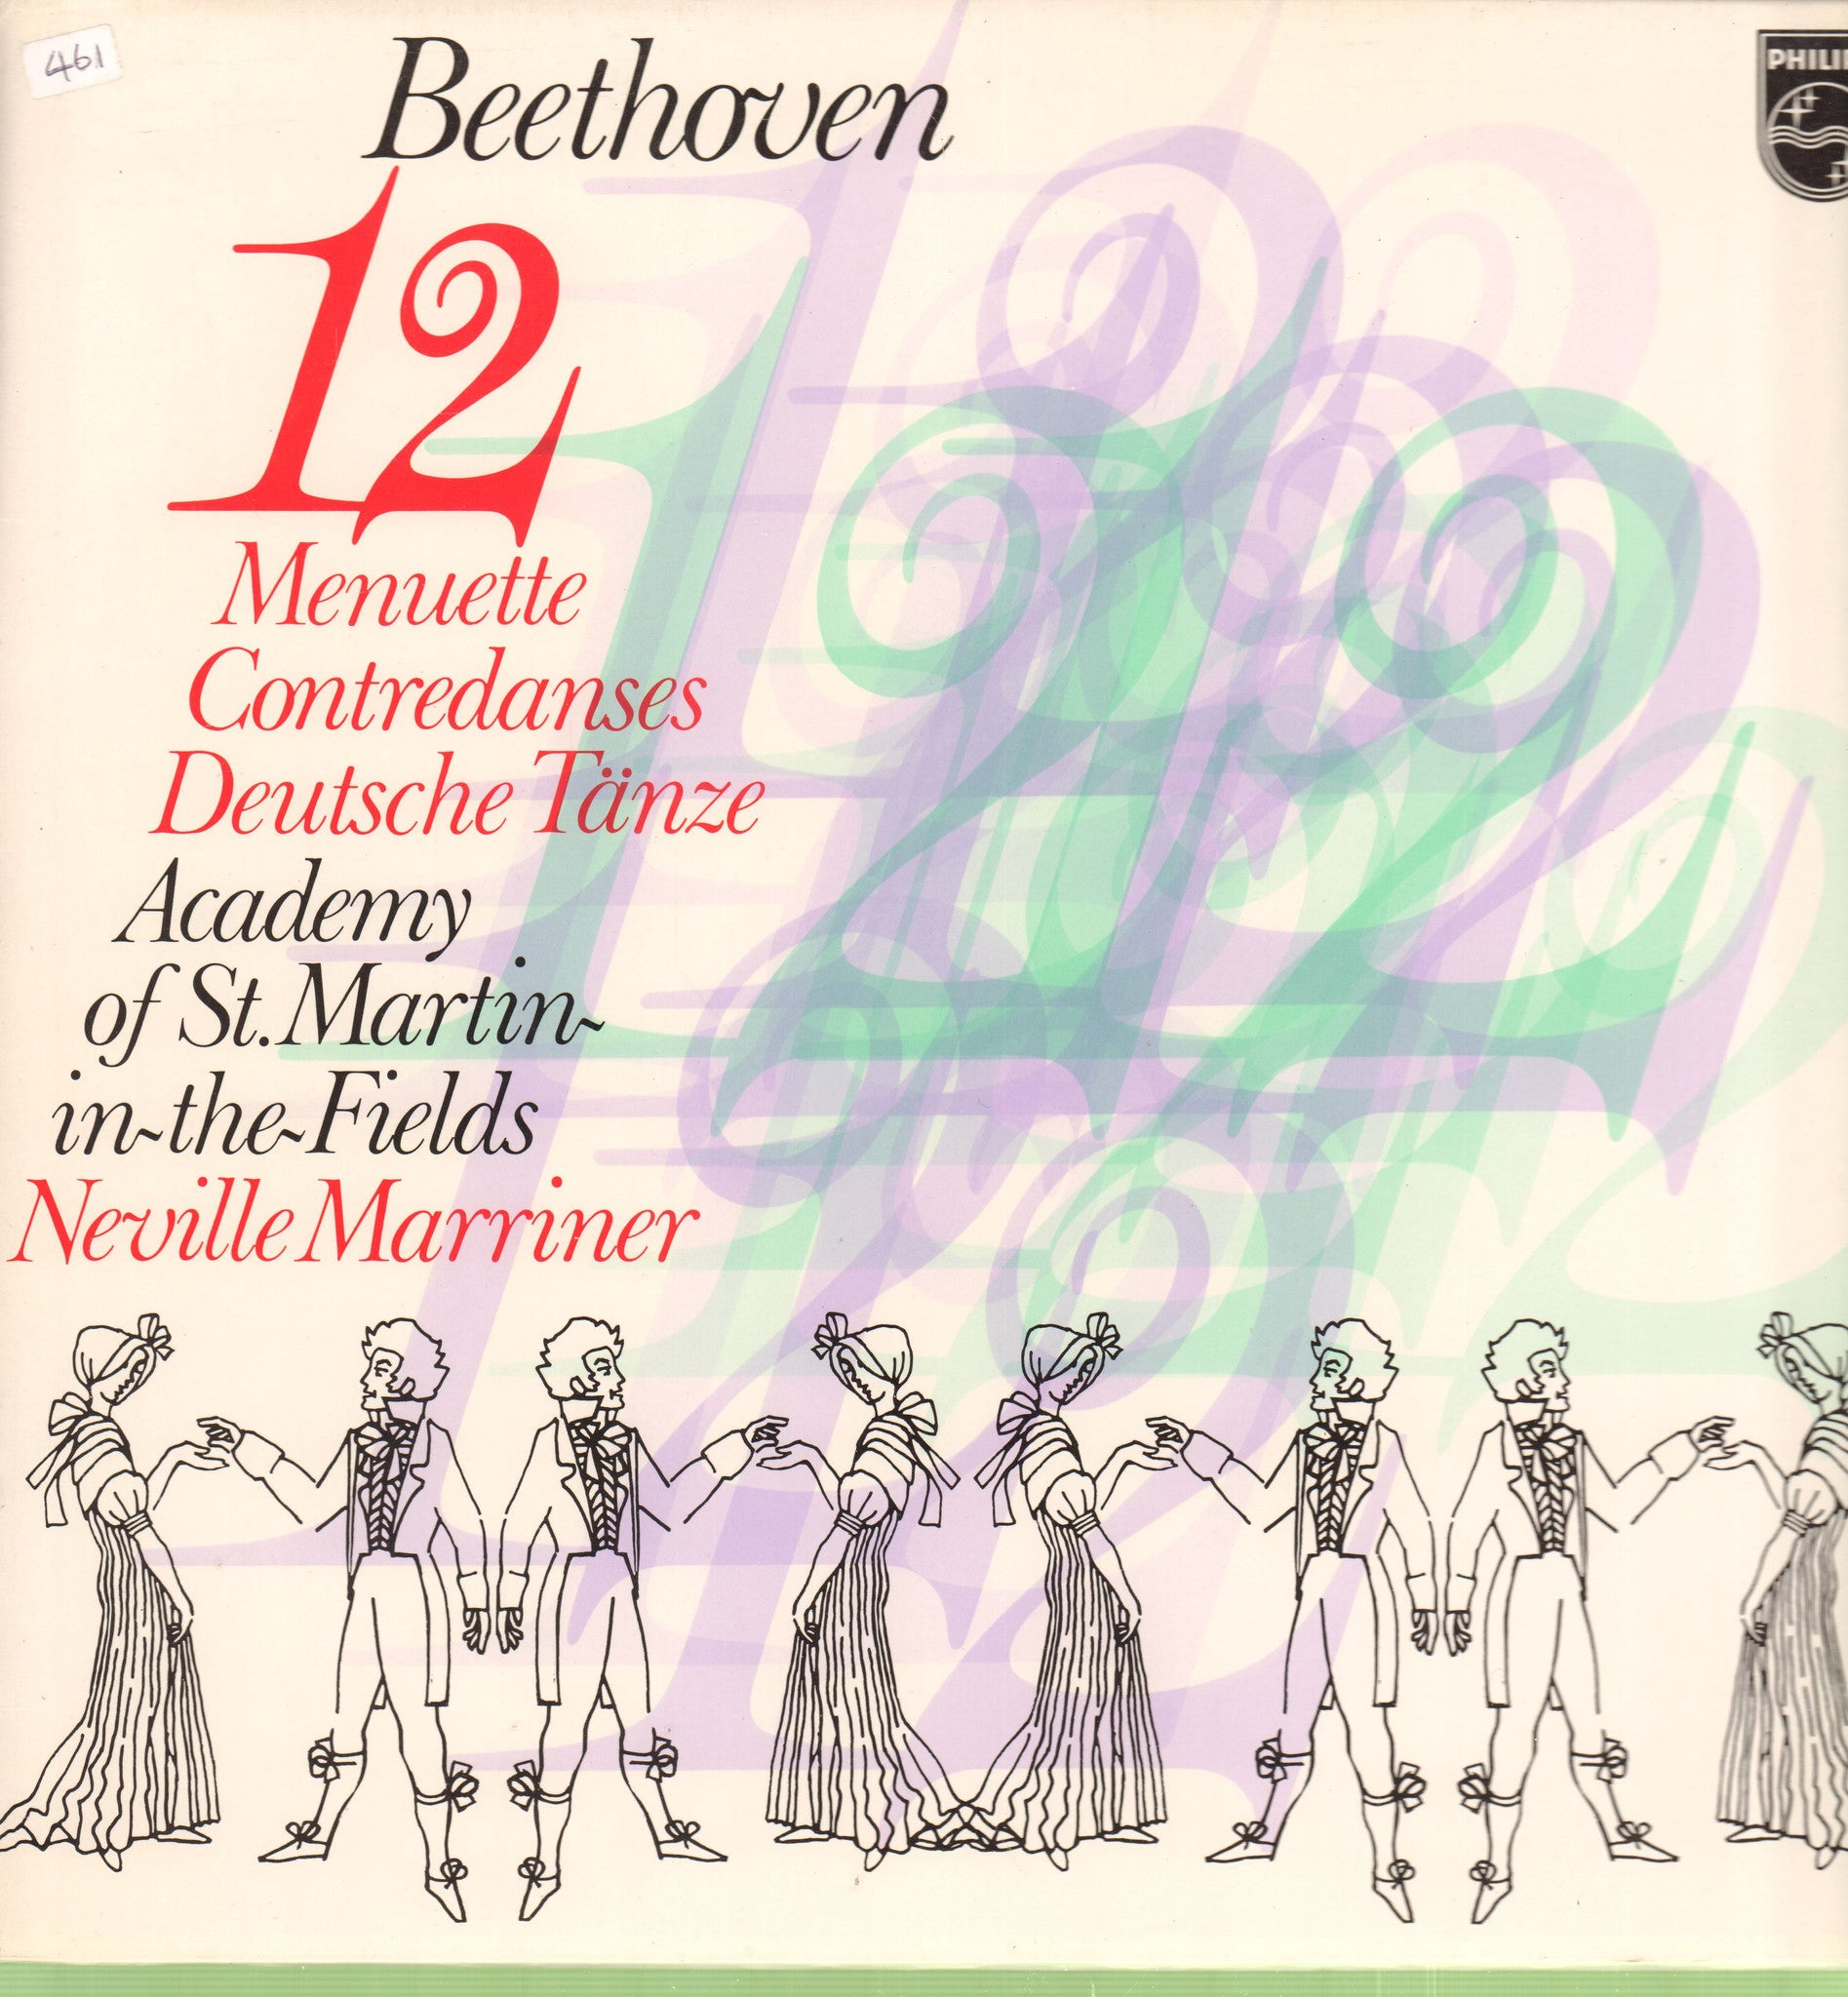 Beethoven-12 Menuette-Philips-Vinyl LP